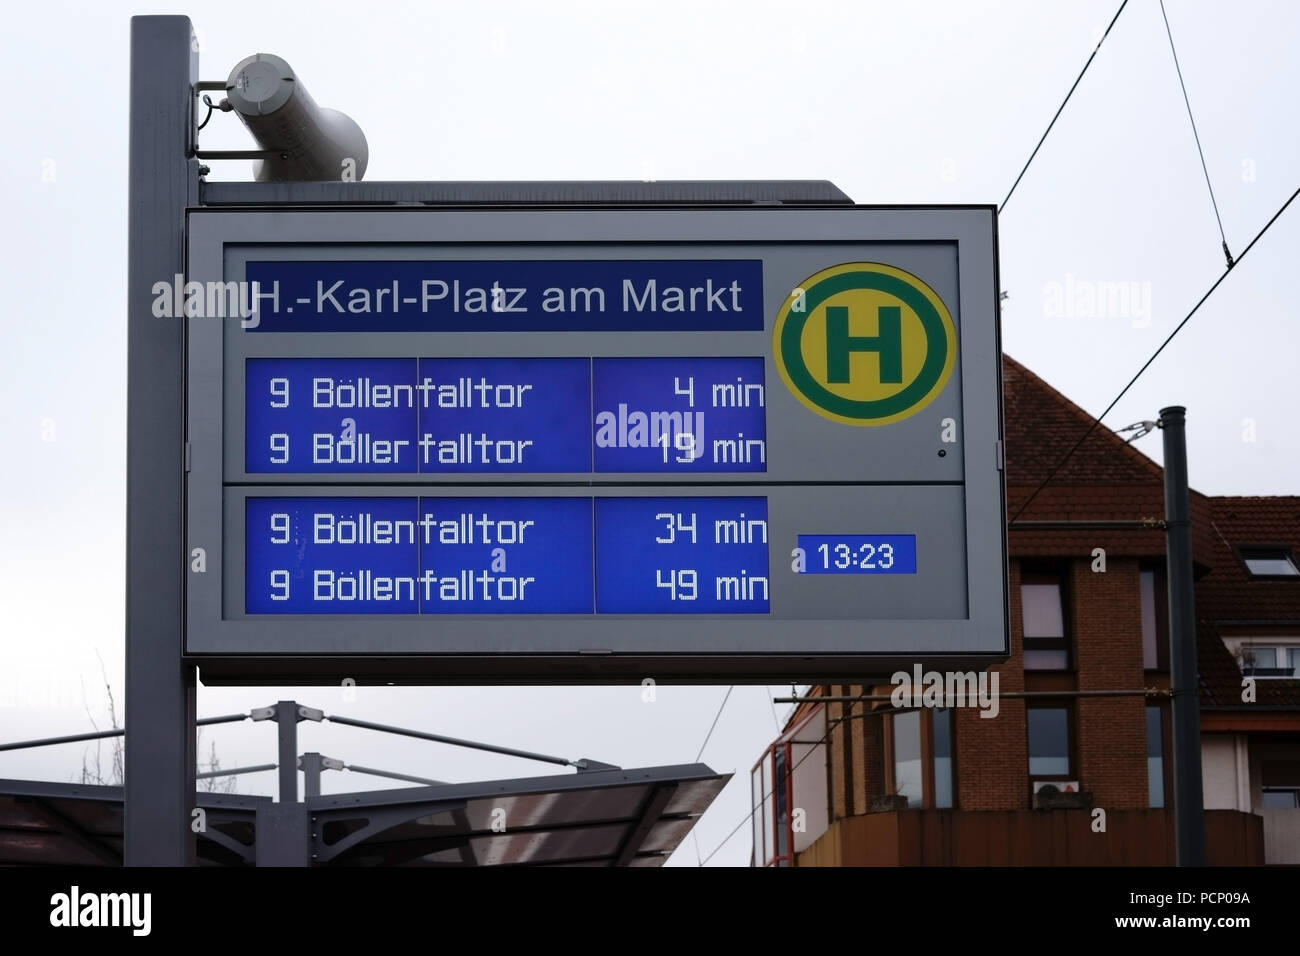 The digital display of a bus stop at Hans-Karl-Platz in Griesheim. - Stock Image